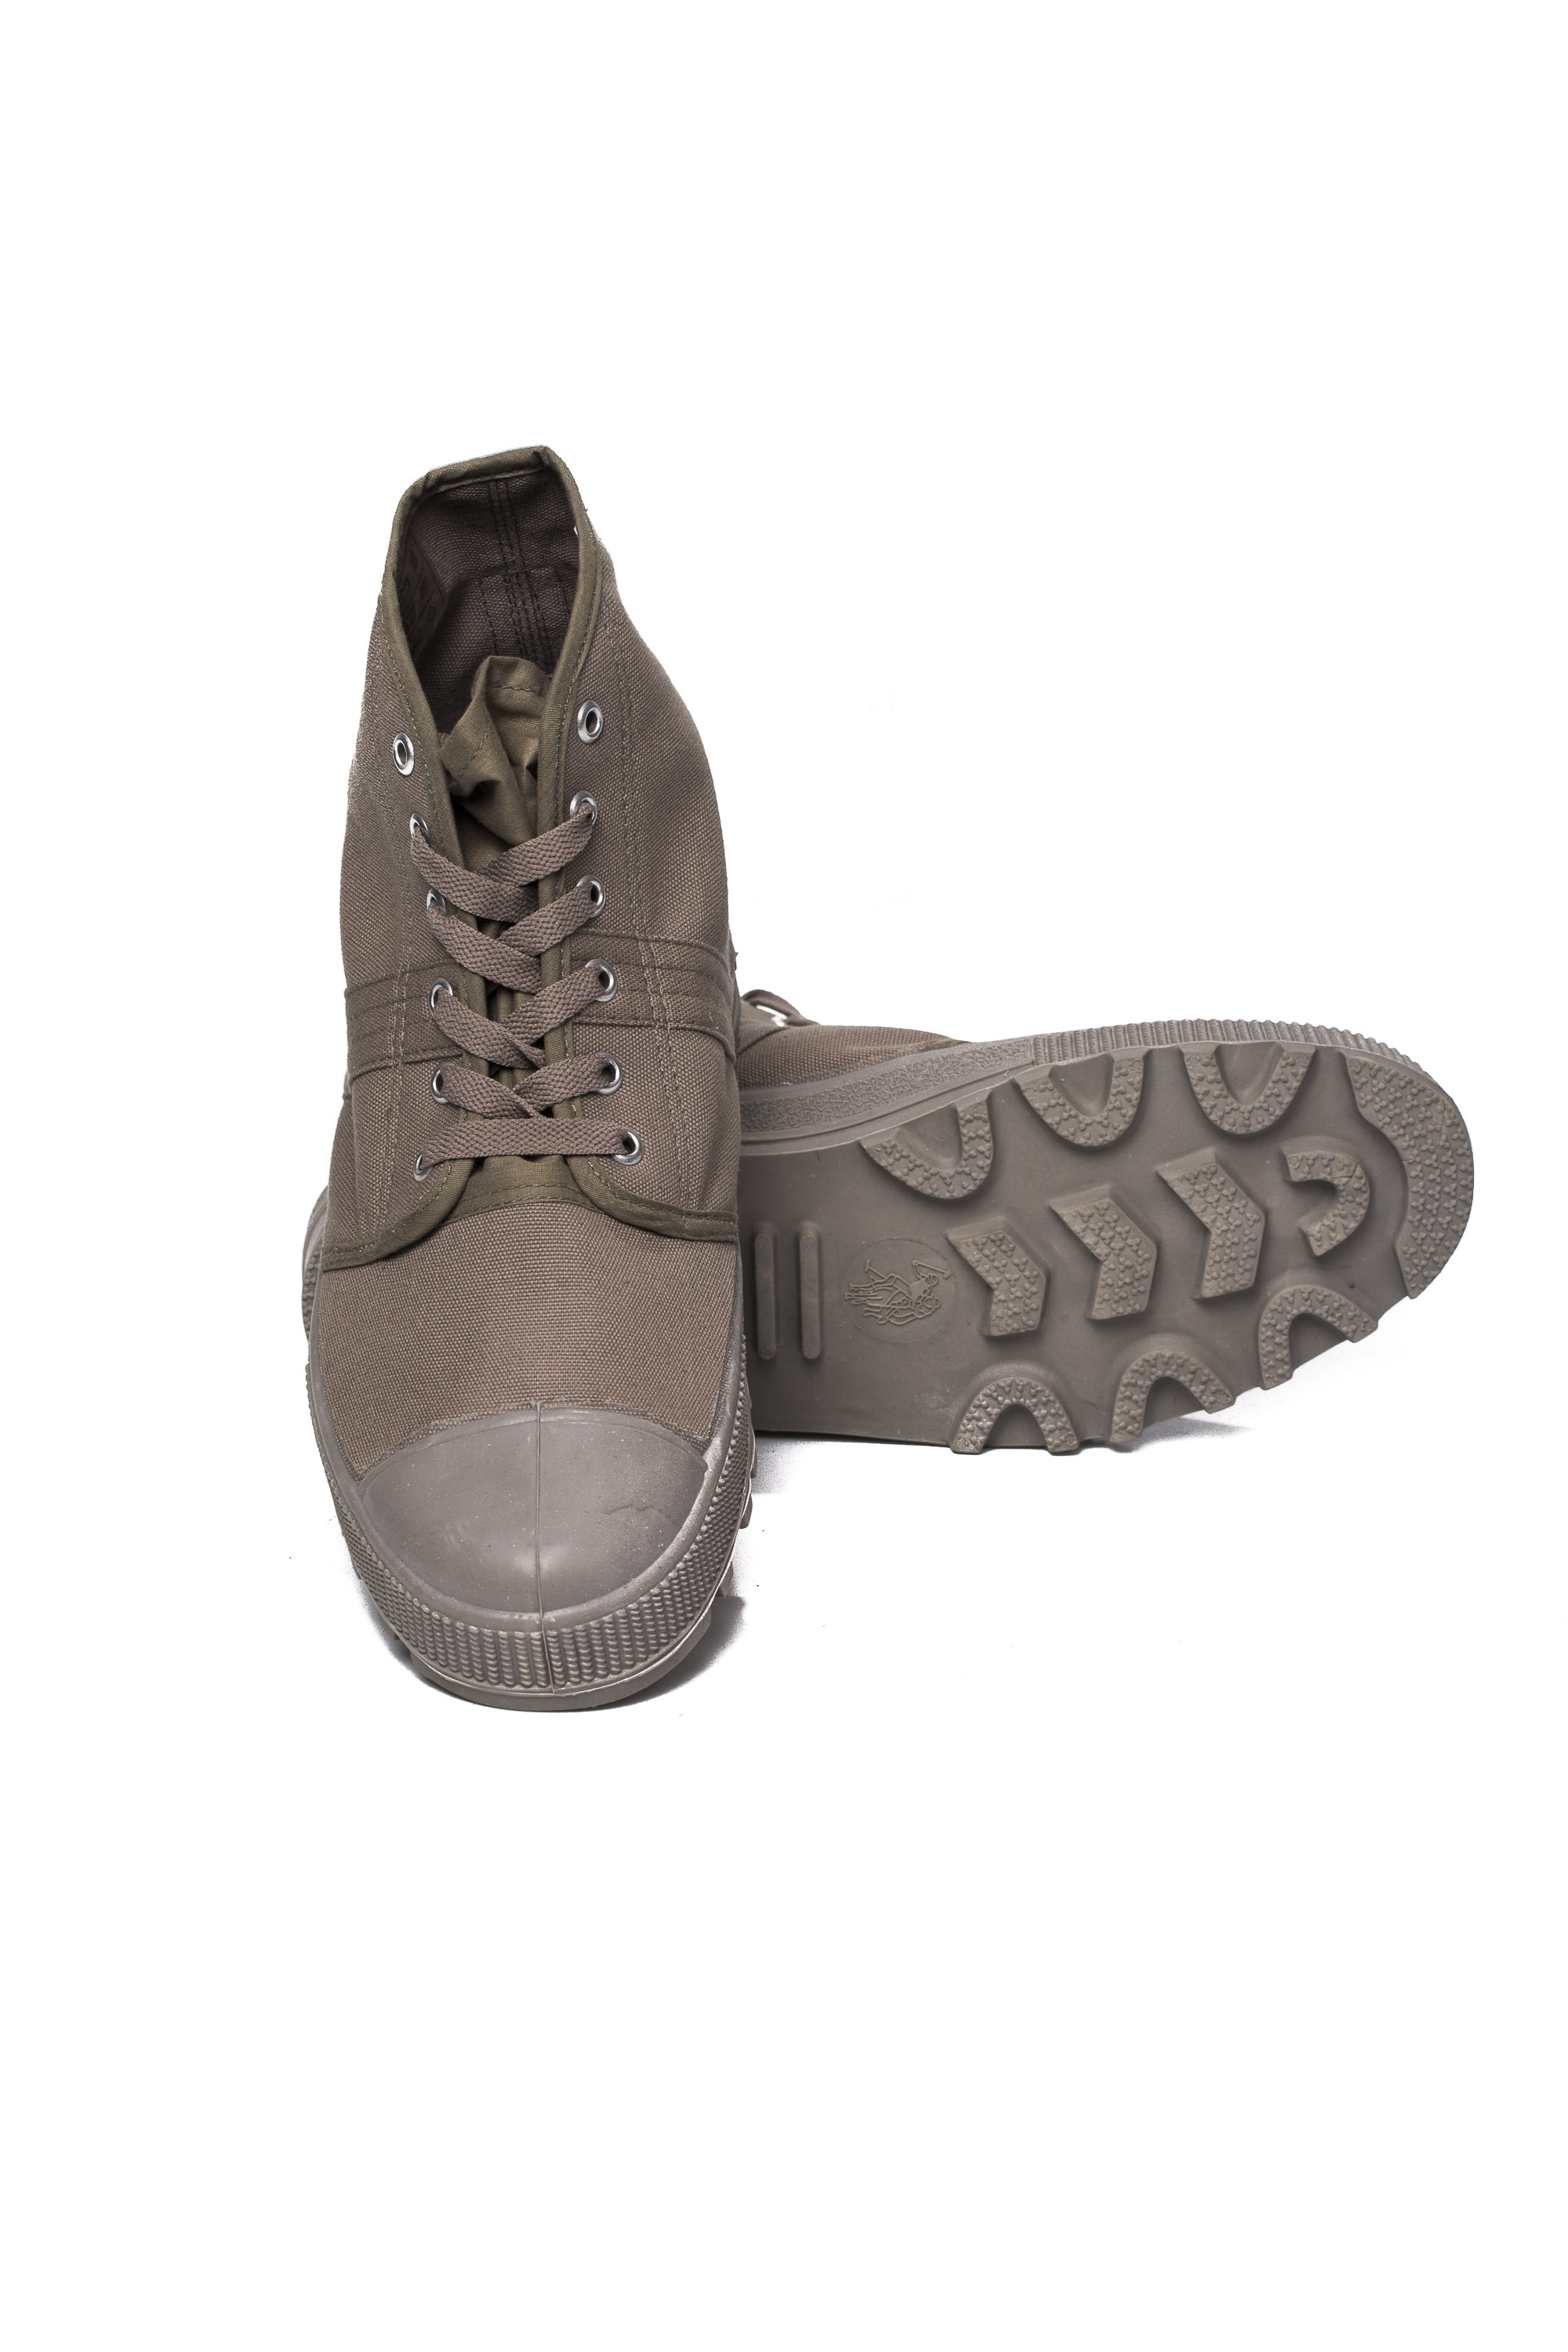 Chaussures   U.S. Polo SU29USP10006_SPARE4300S5-C1 grey